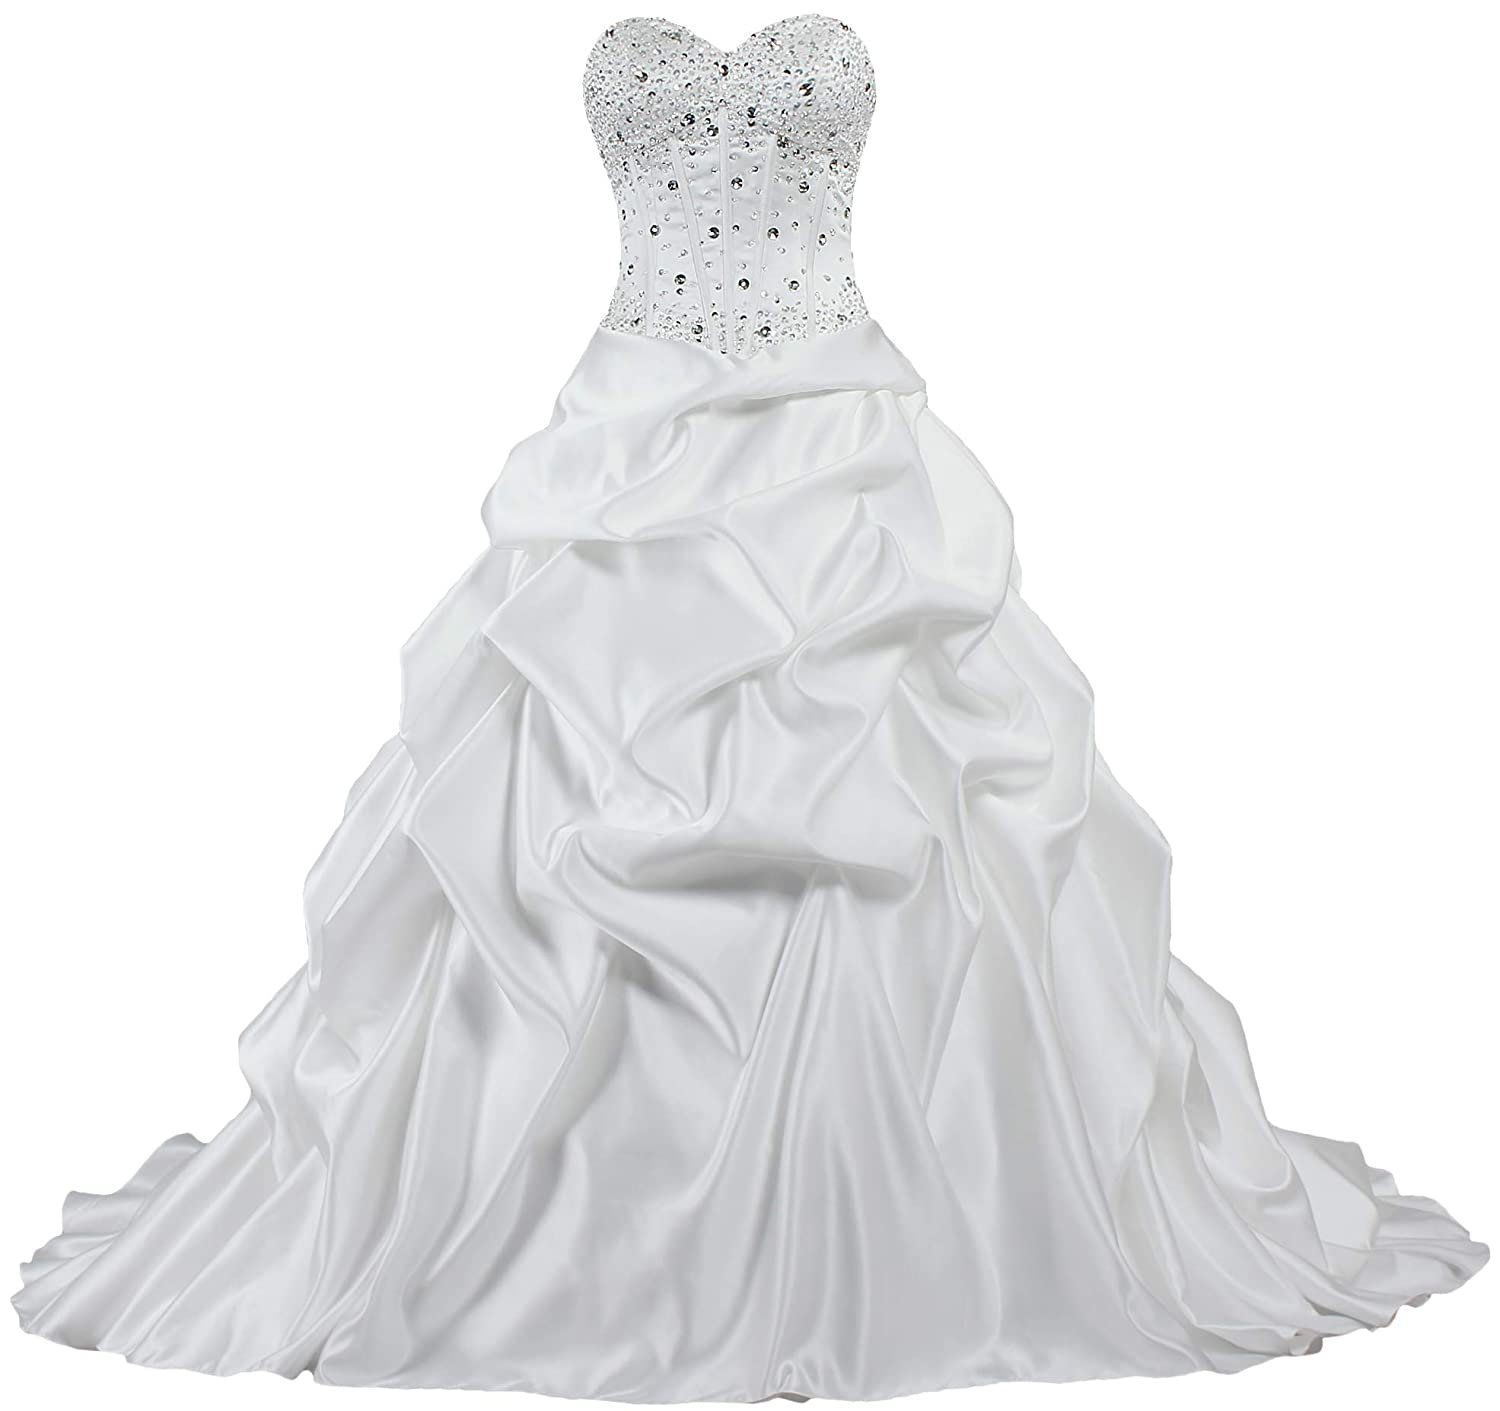 Ivory ANTS Women's Strapless Bead Ruched Satin Wedding Dresses for Bride